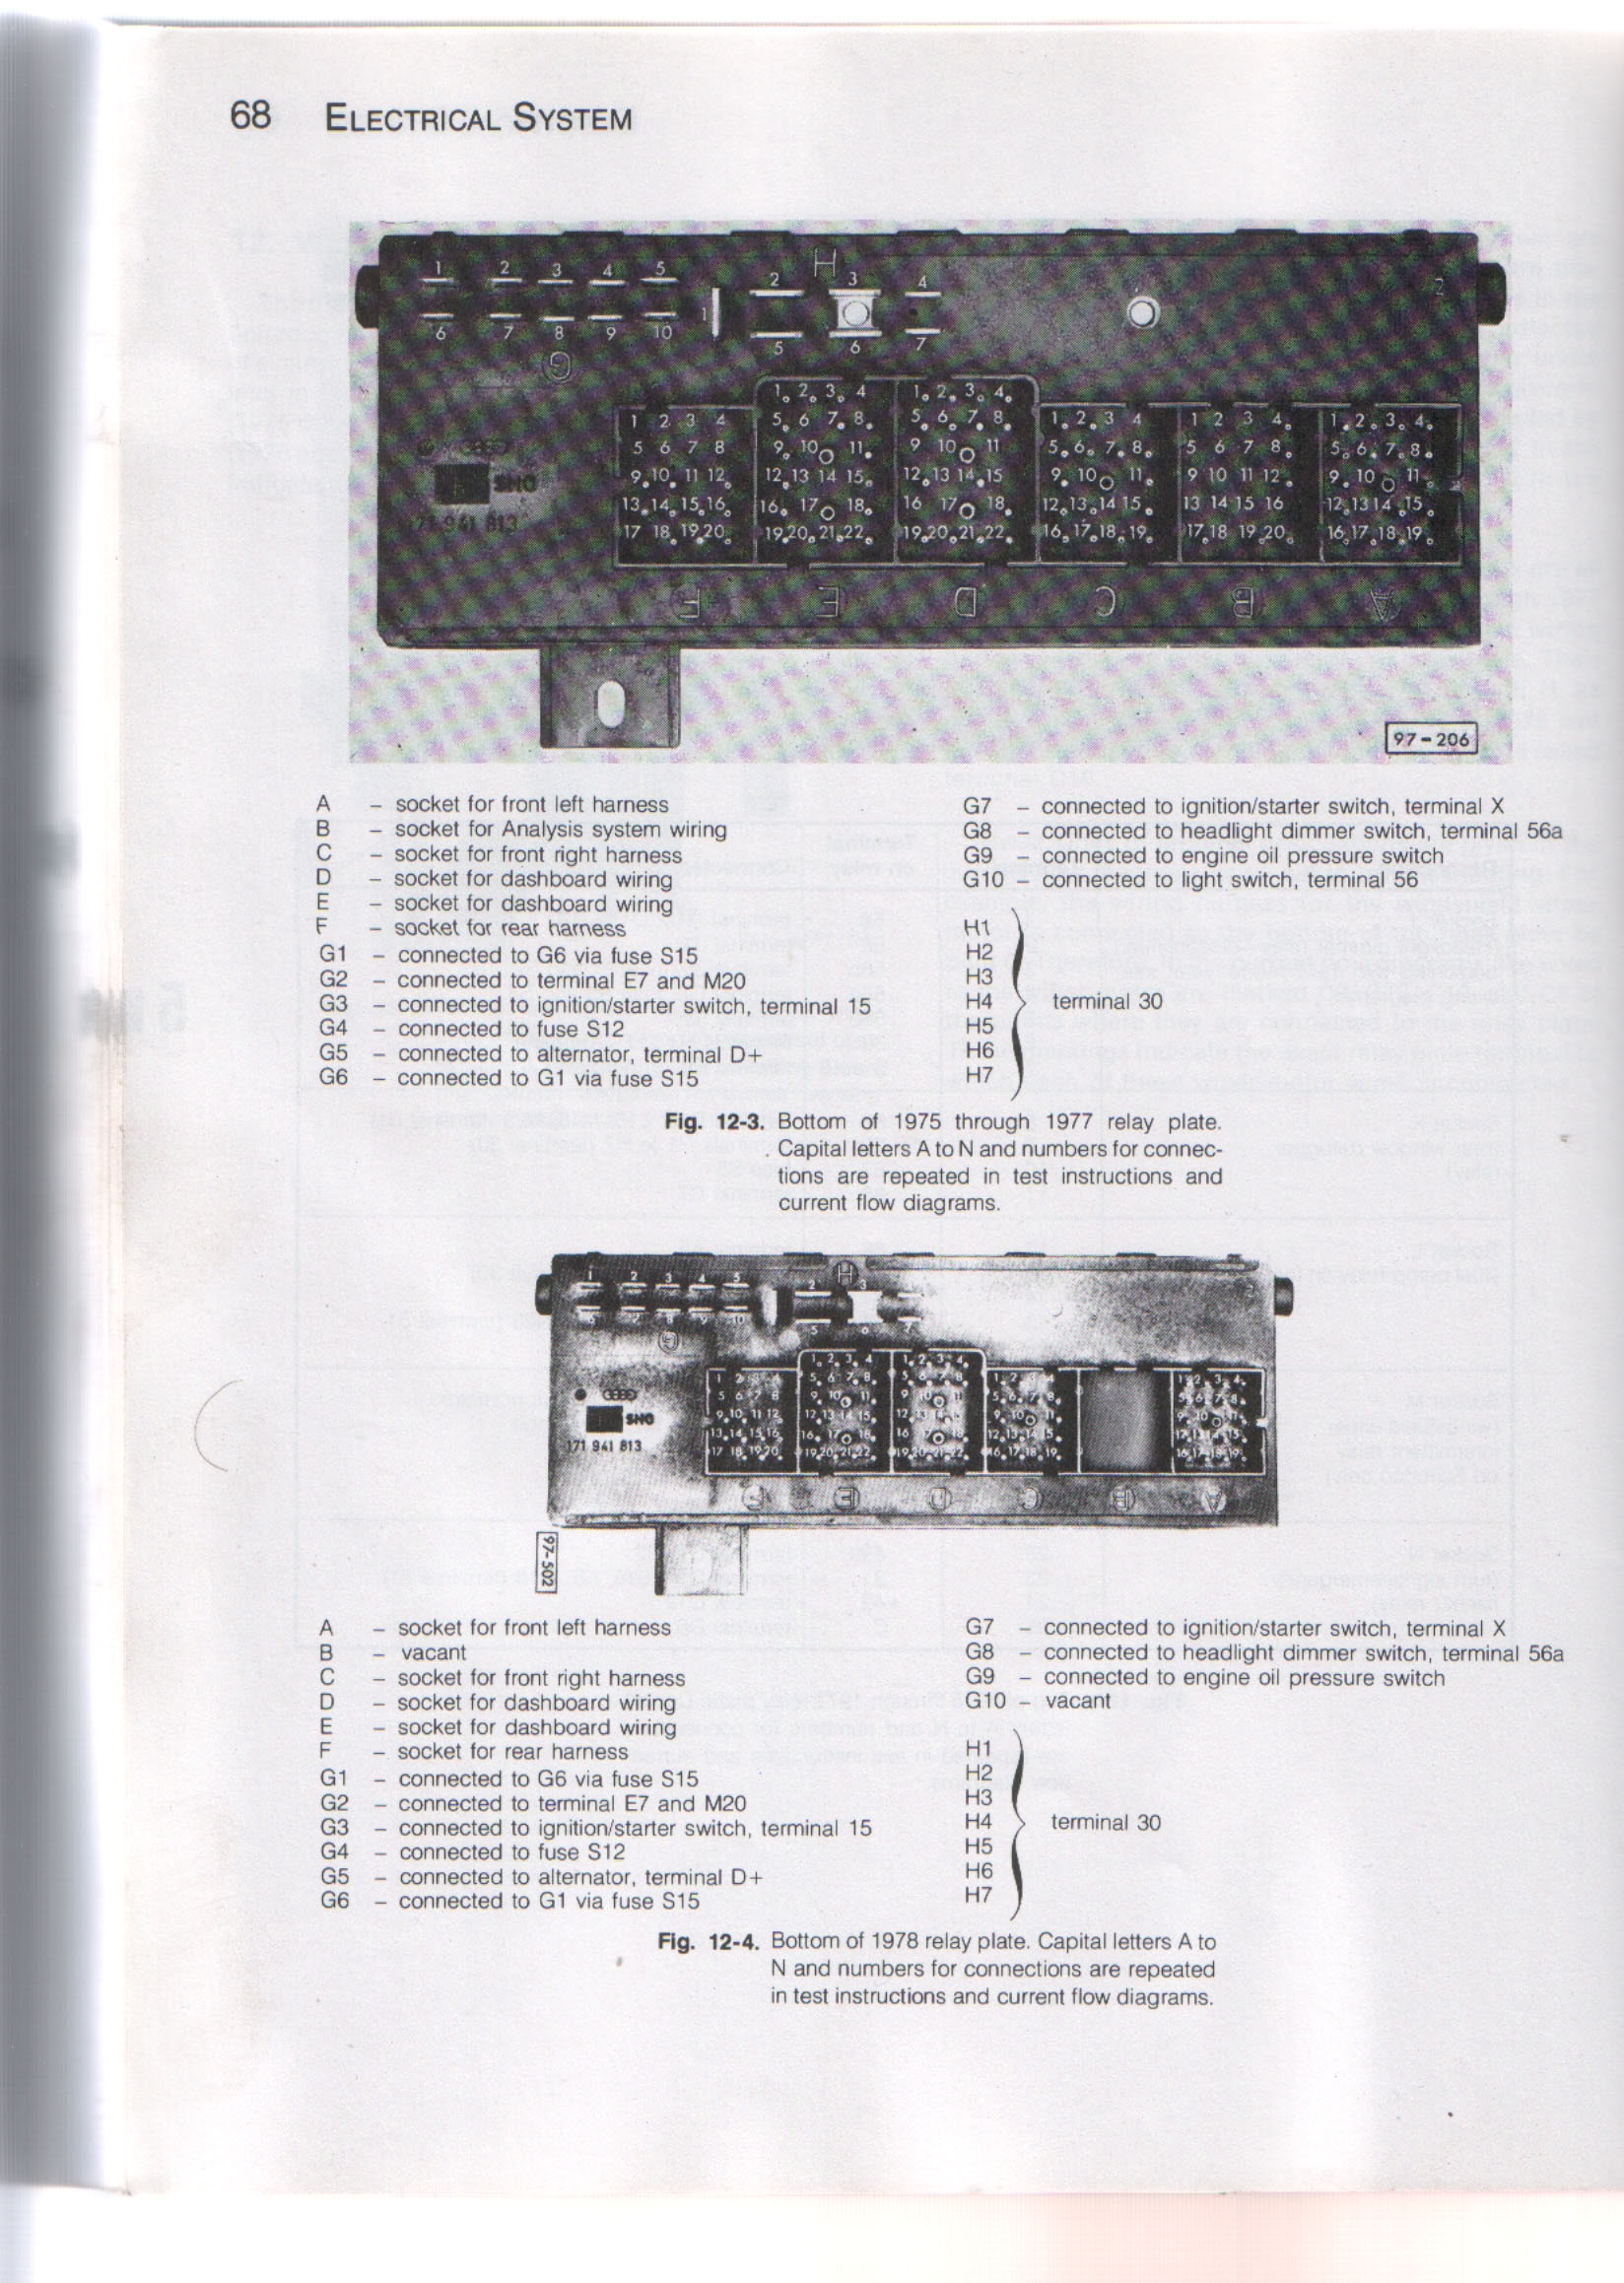 2009 vw rabbit fuse box diagram gAYbQTL 2007 vw rabbit fuse box diagram image details 1982 vw rabbit fuse box at aneh.co